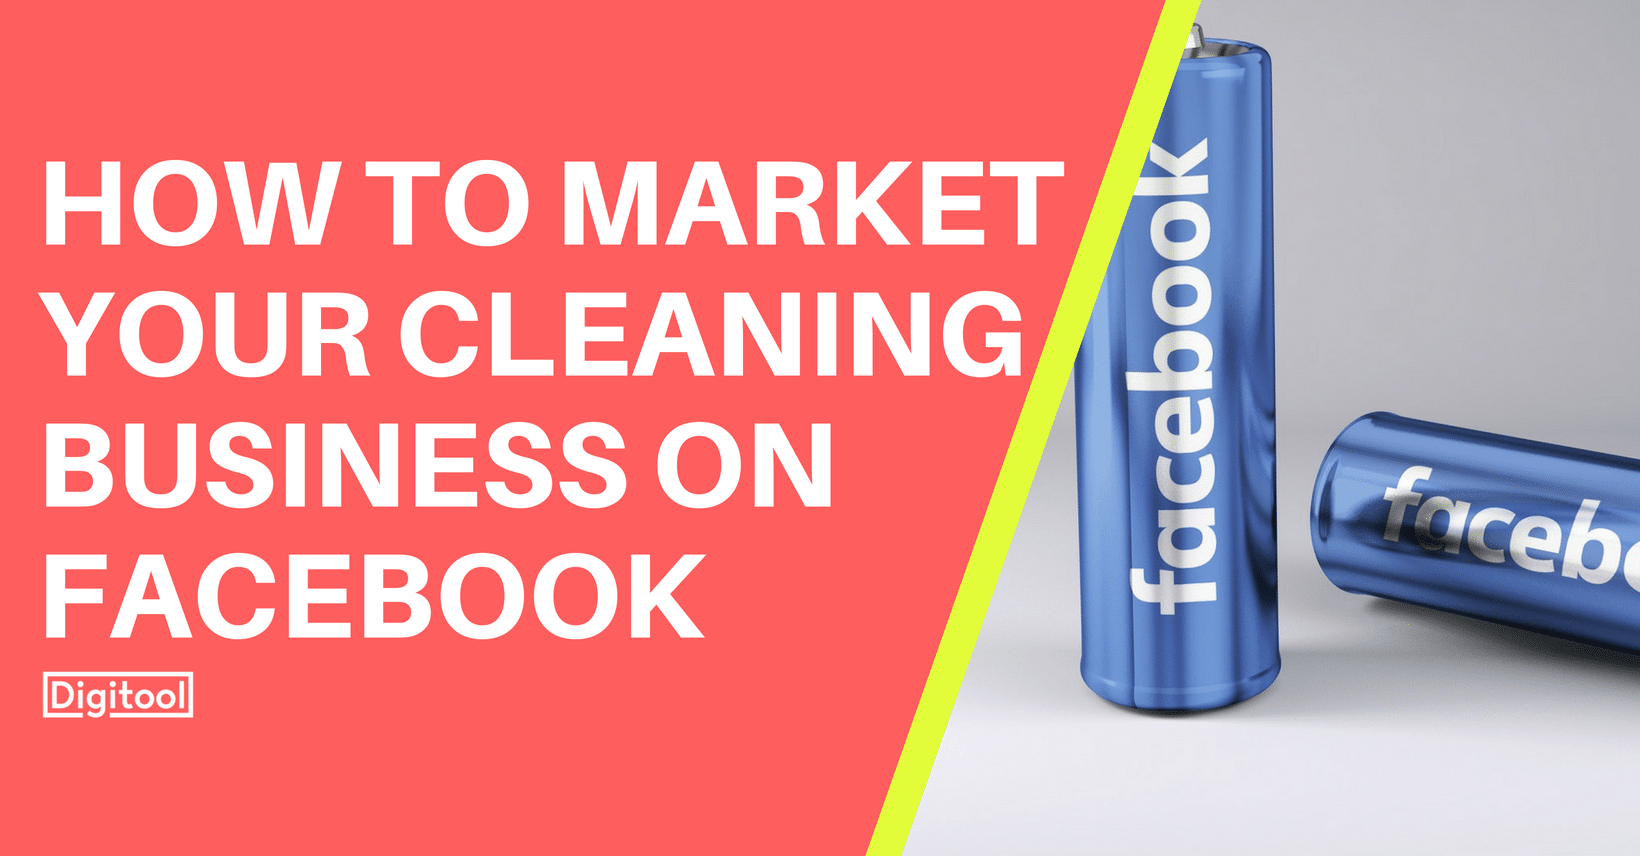 Share Marketing Advertising Tips To Make Our Cleaning Businesses Grow 1 Png